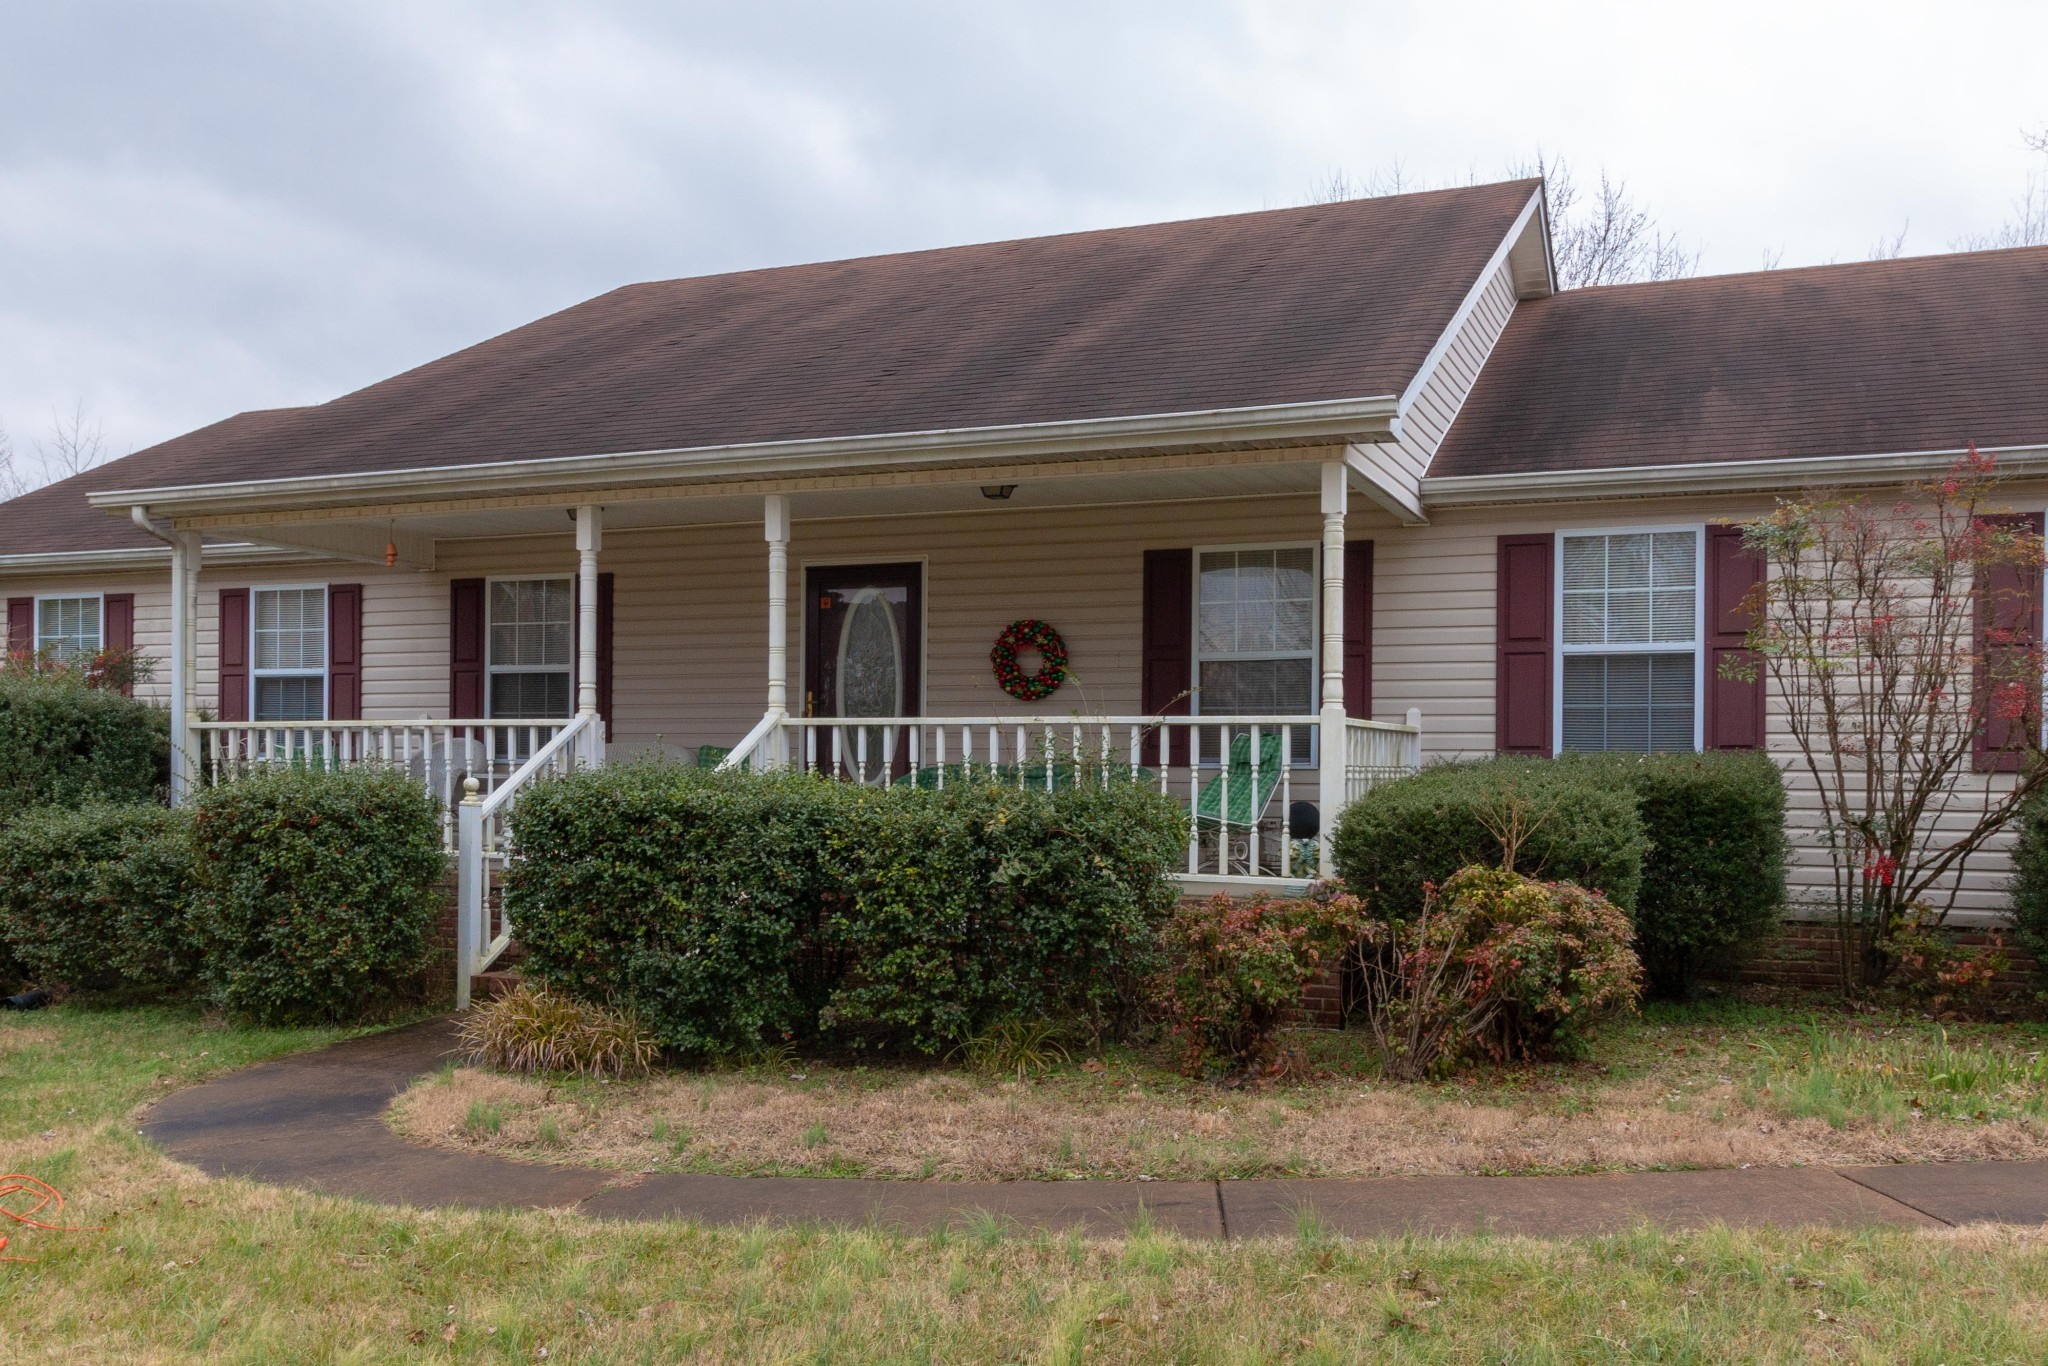 103 Eagle Haven Dr, Summertown, TN 38483 - Summertown, TN real estate listing